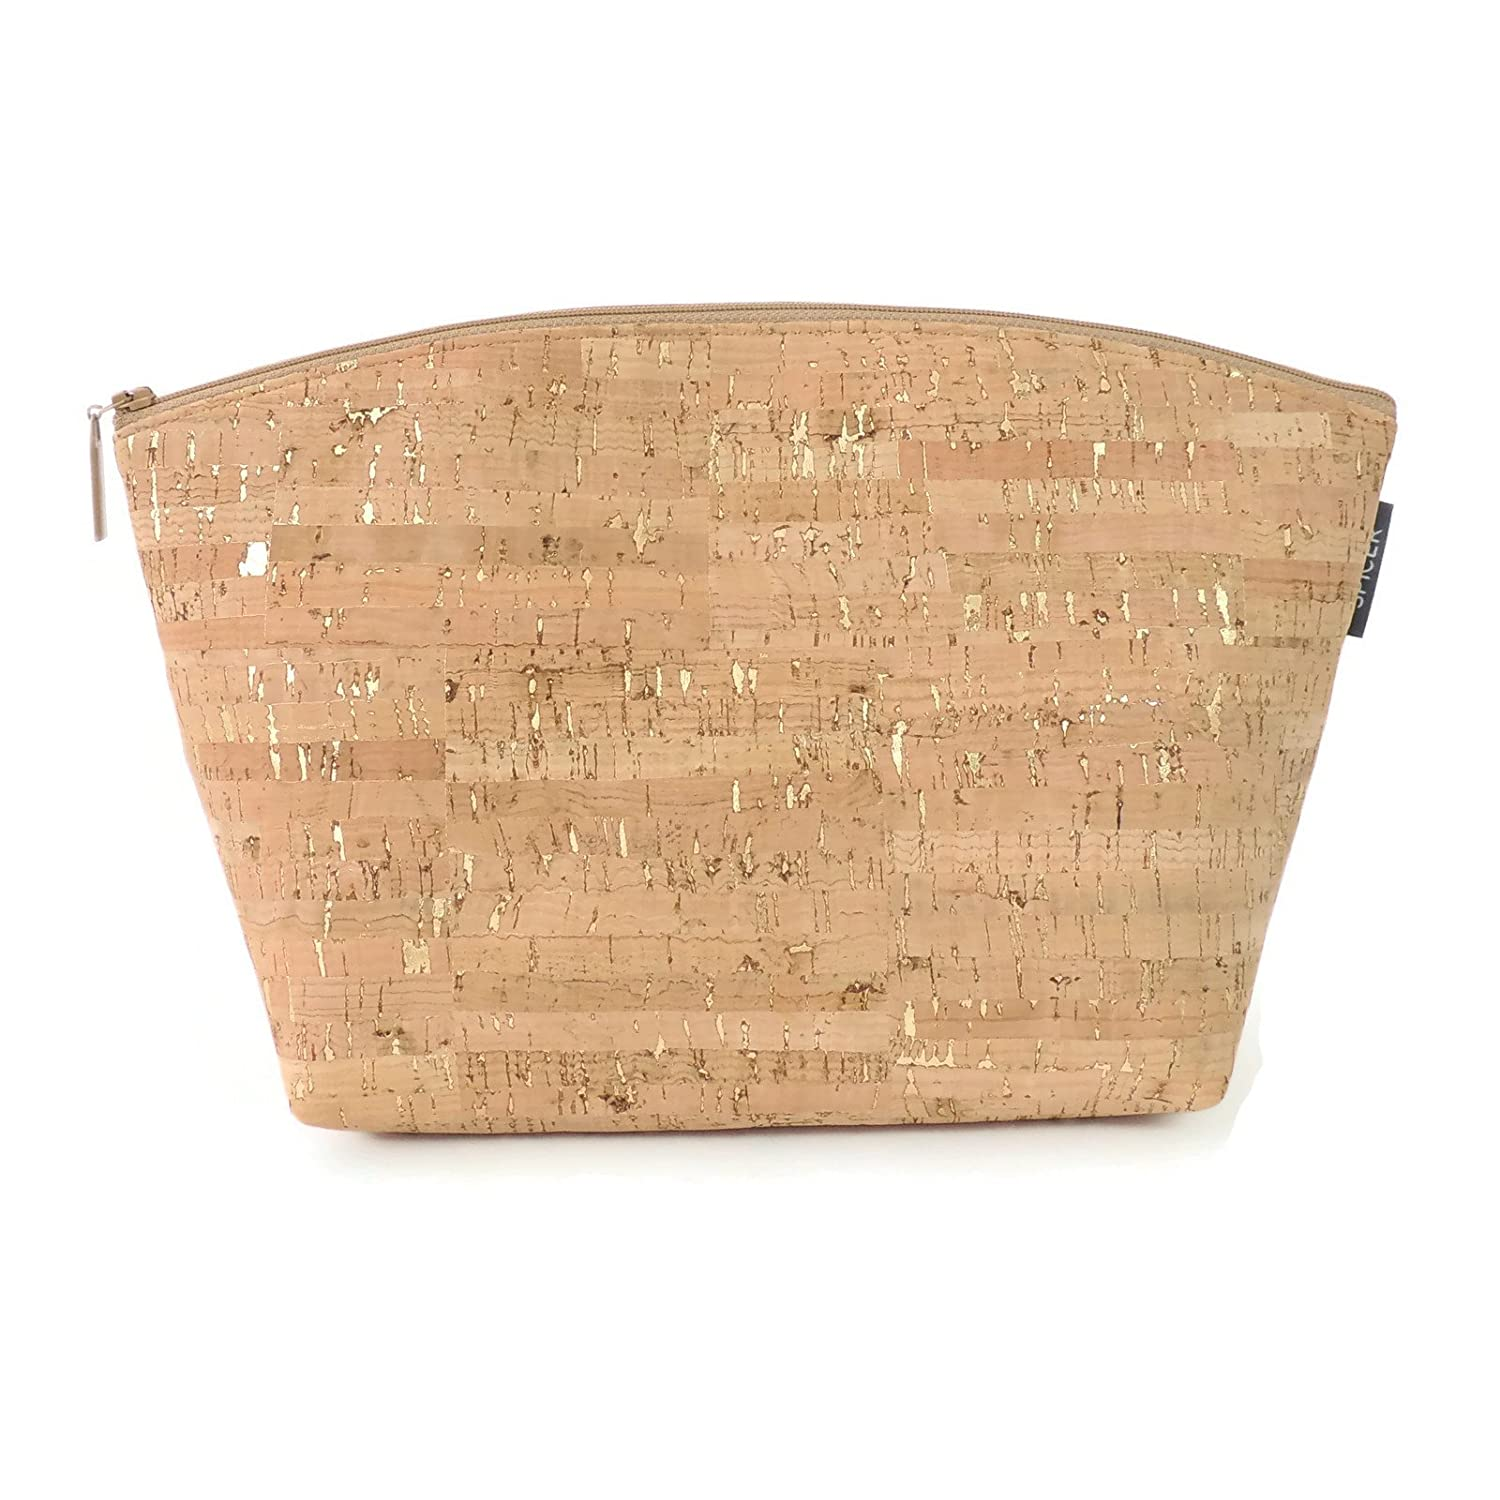 Large Makeup Pouch in Cork with Gold Flecks by Spicer Bags